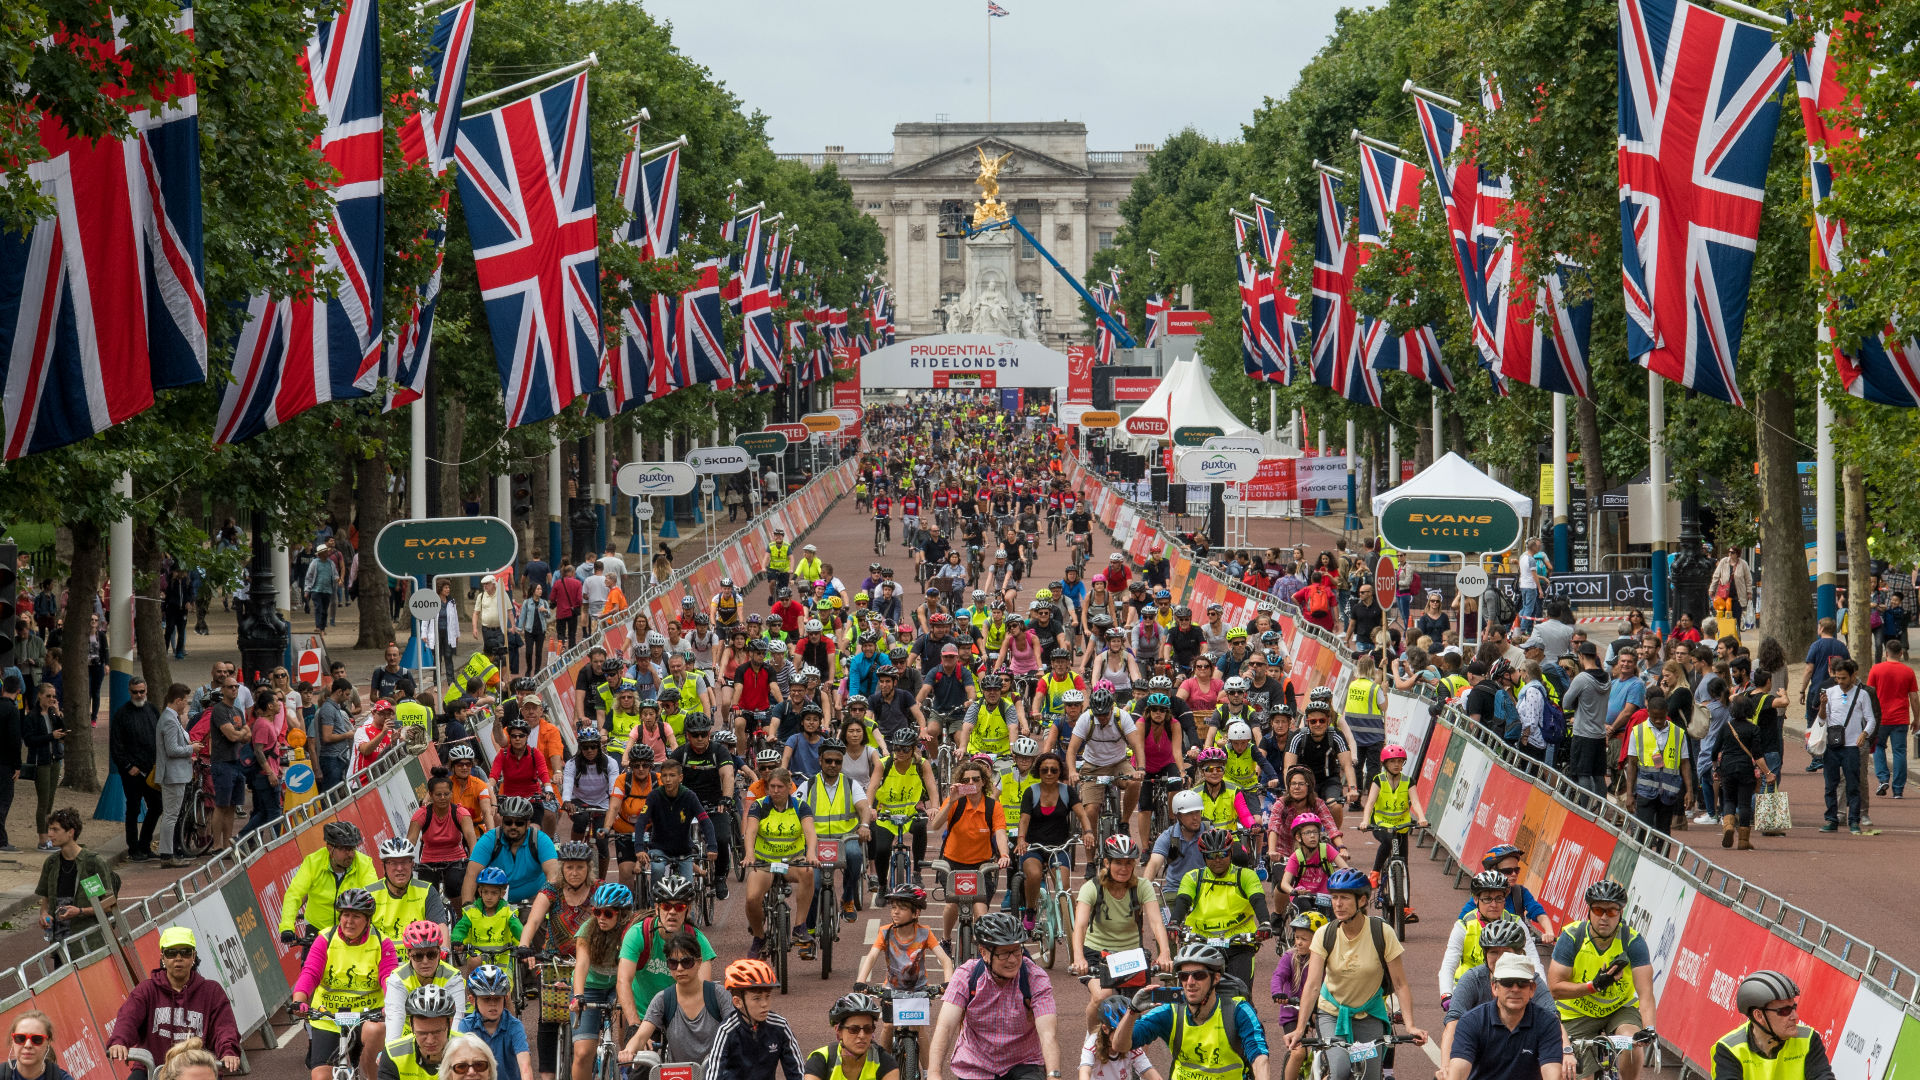 Riders in the Prudential RideLondon FreeCycle finish on The Mall. Image courtesy of Prudential RideLondon